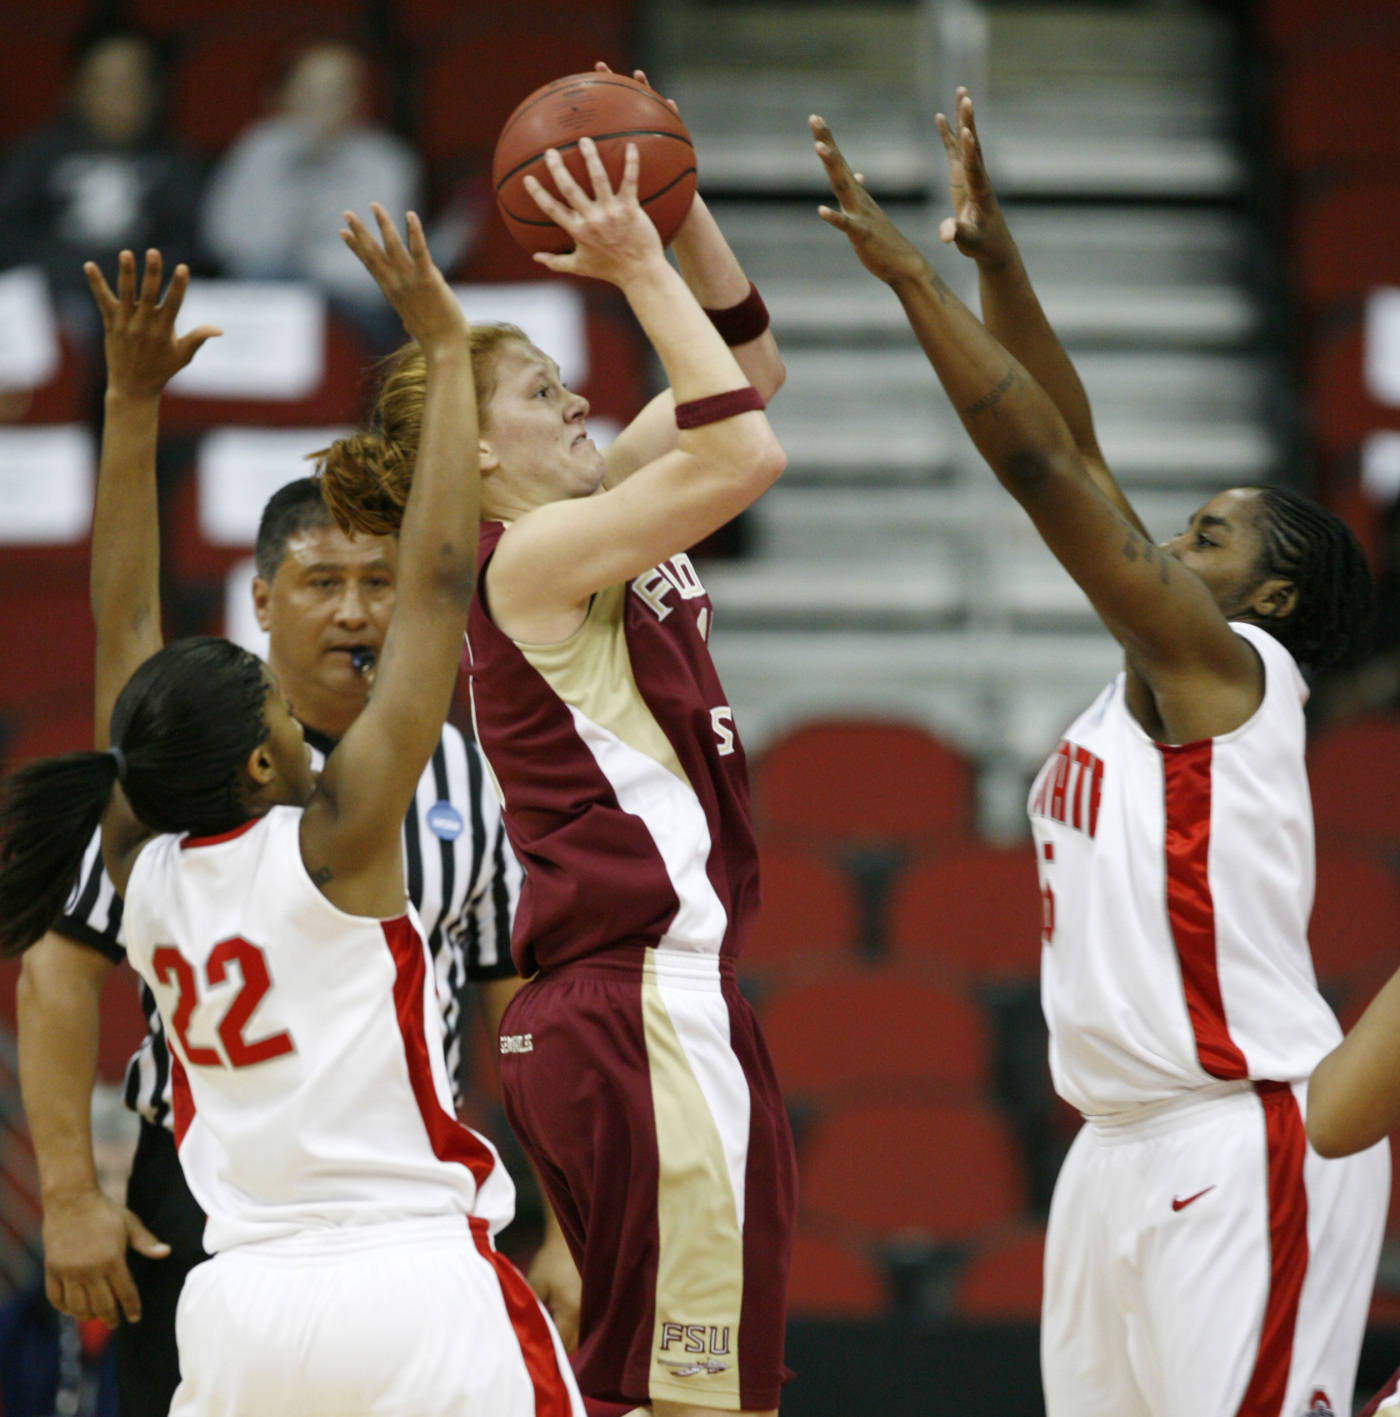 Florida State's Mara Freshour shoots between Ohio State's Marscilla Packer and Star Allen  during the first half. (AP Photo/Charlie Neibergall)